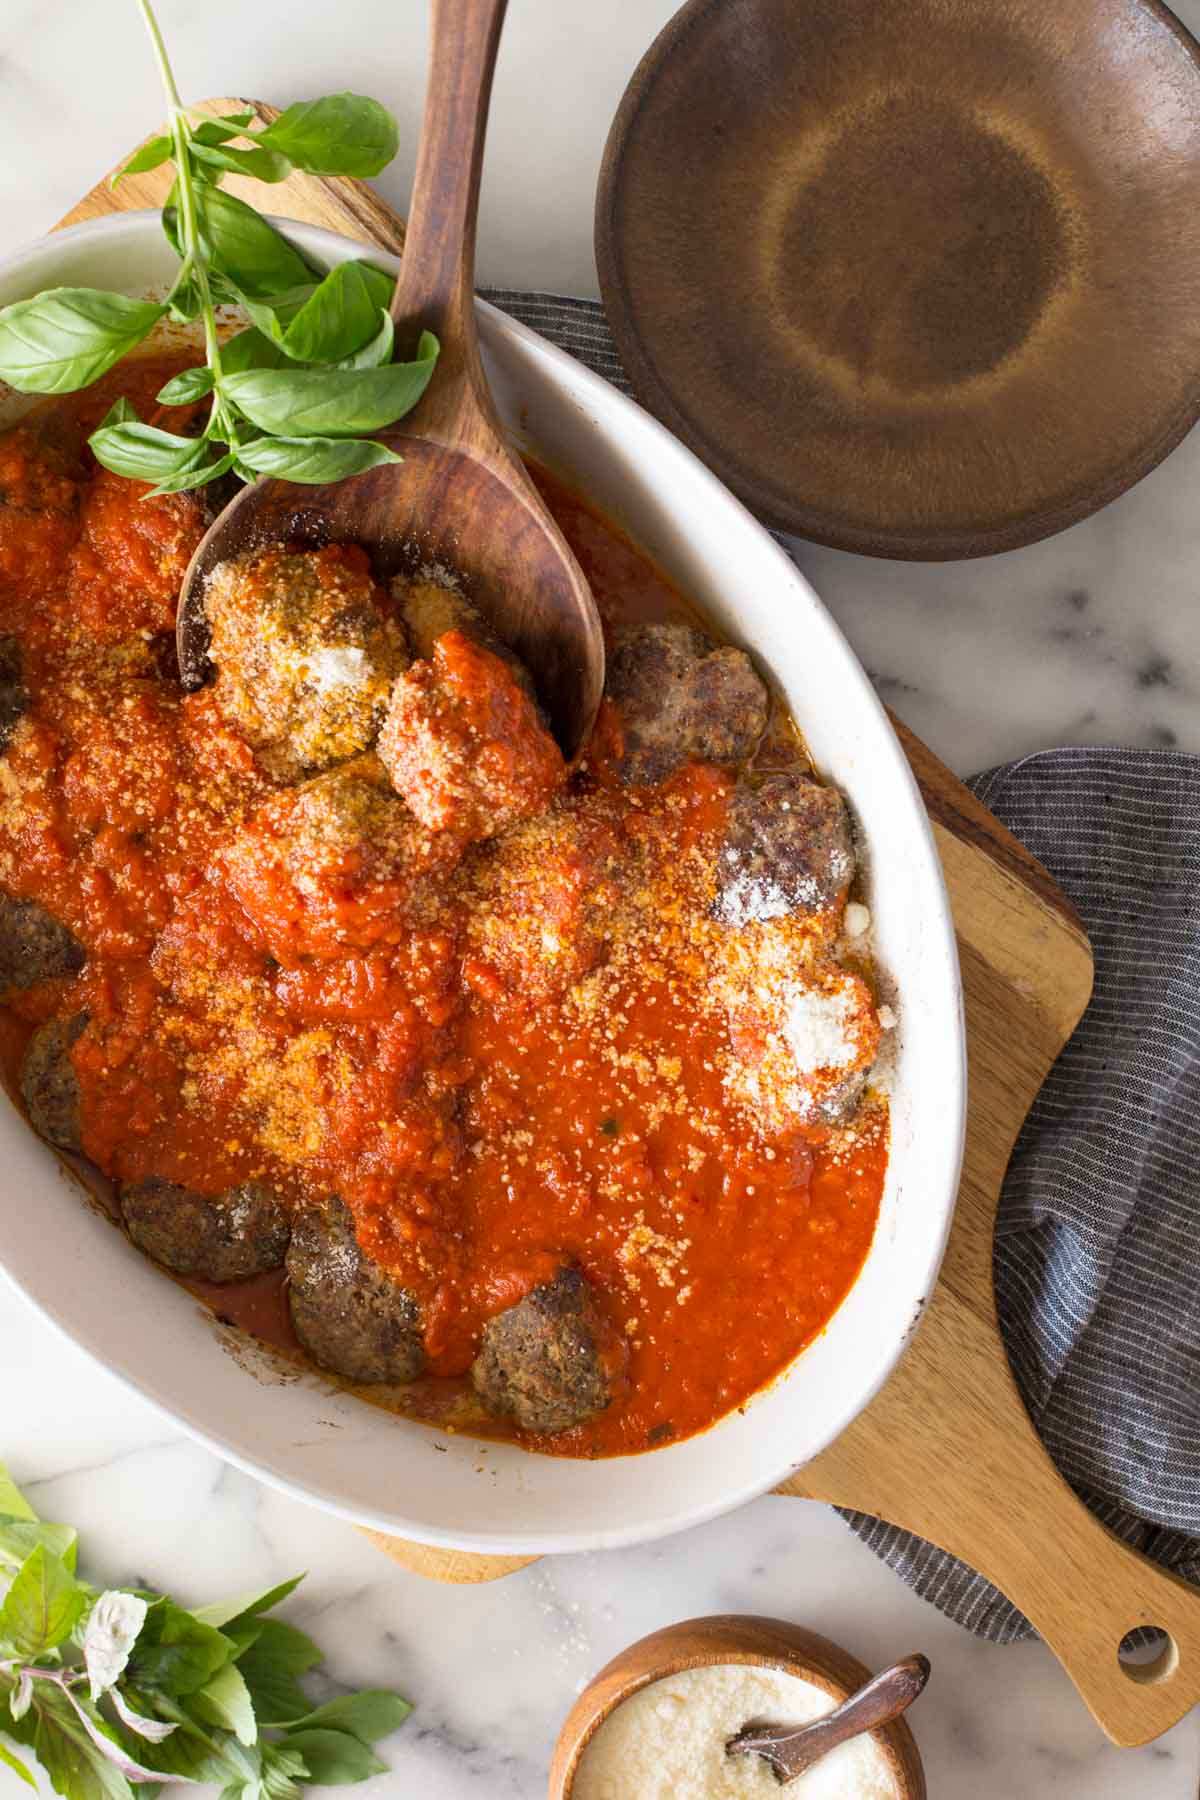 Overhead shot of Easy Broiled Italian Meatballs in a baking dish sitting on a wooden cutting board, with a wood serving spoon in the meatballs.